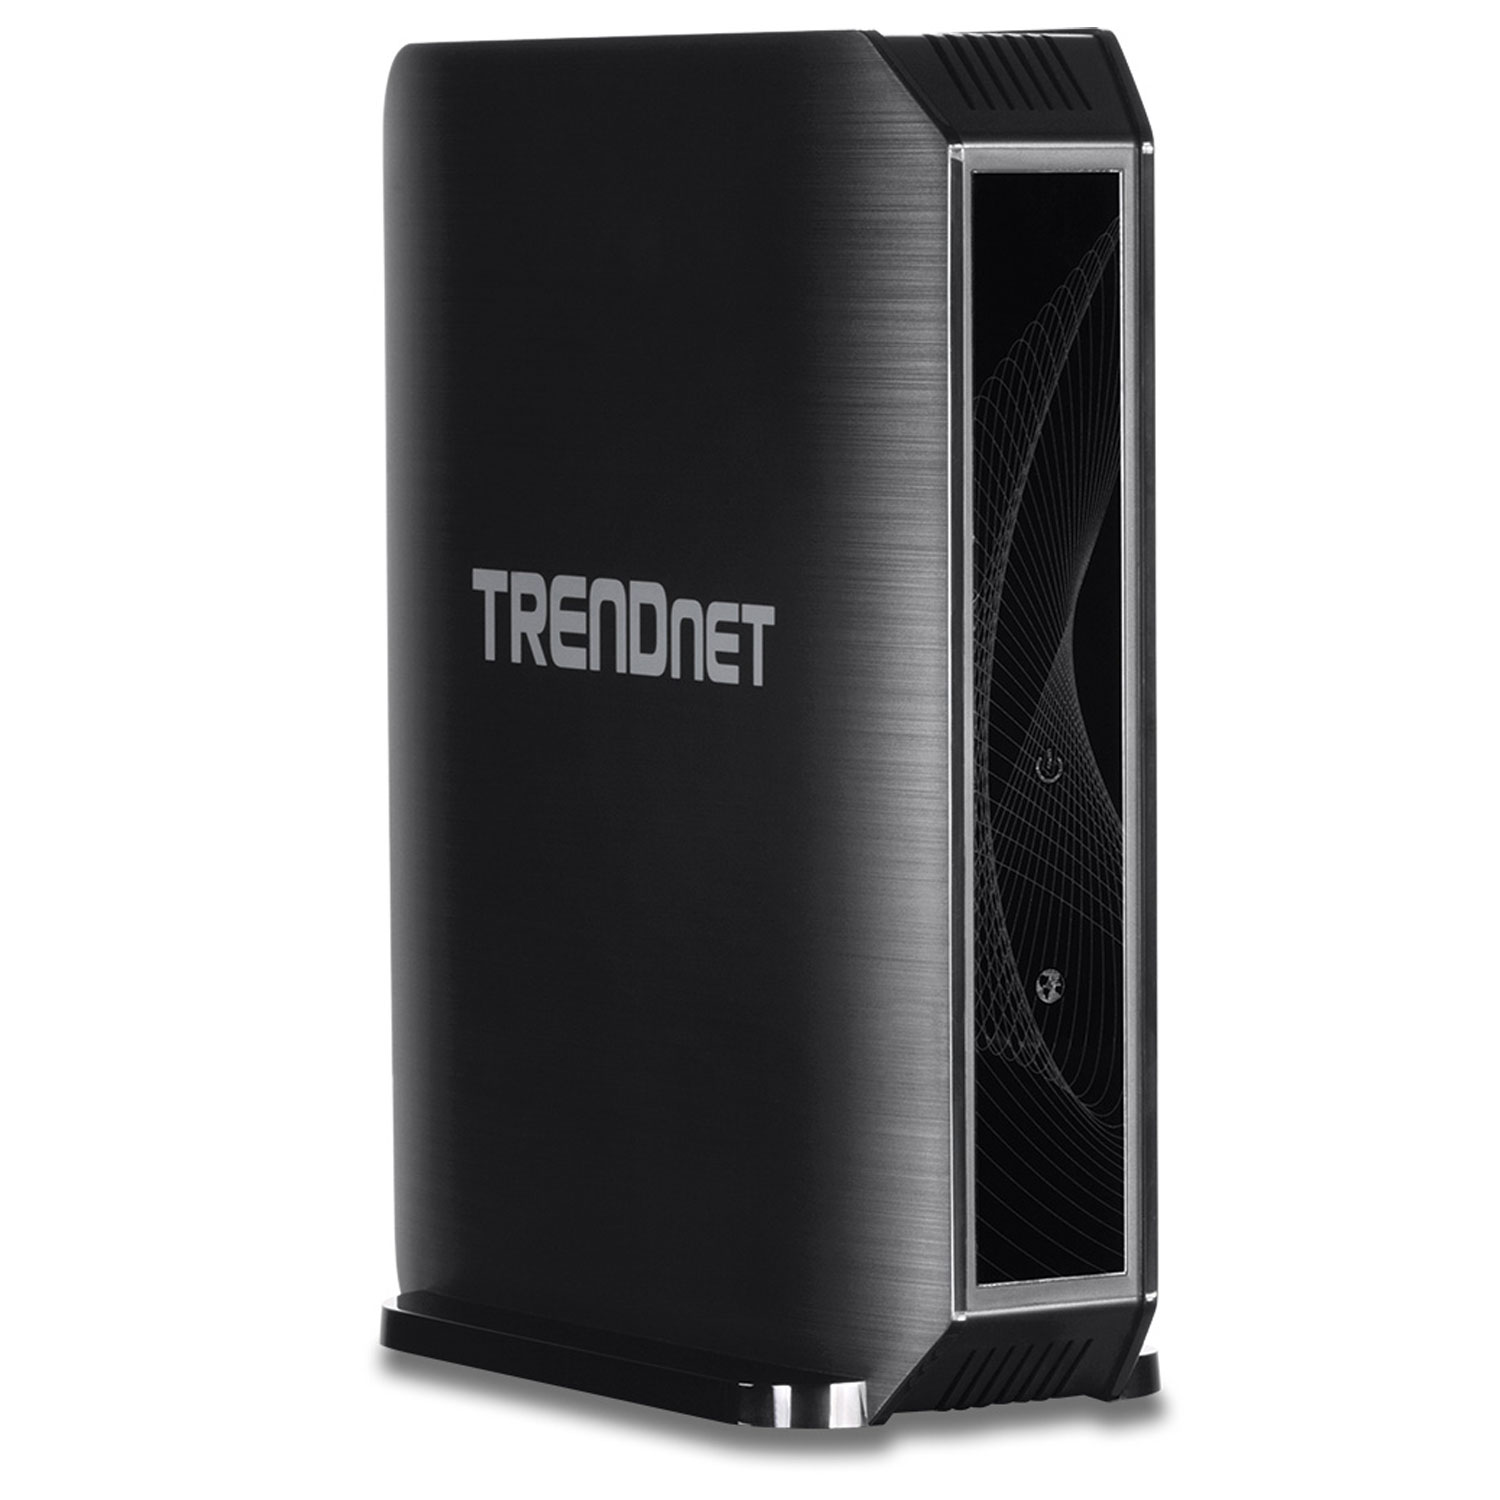 trendnet tew 824dru modem routeur trendnet sur. Black Bedroom Furniture Sets. Home Design Ideas